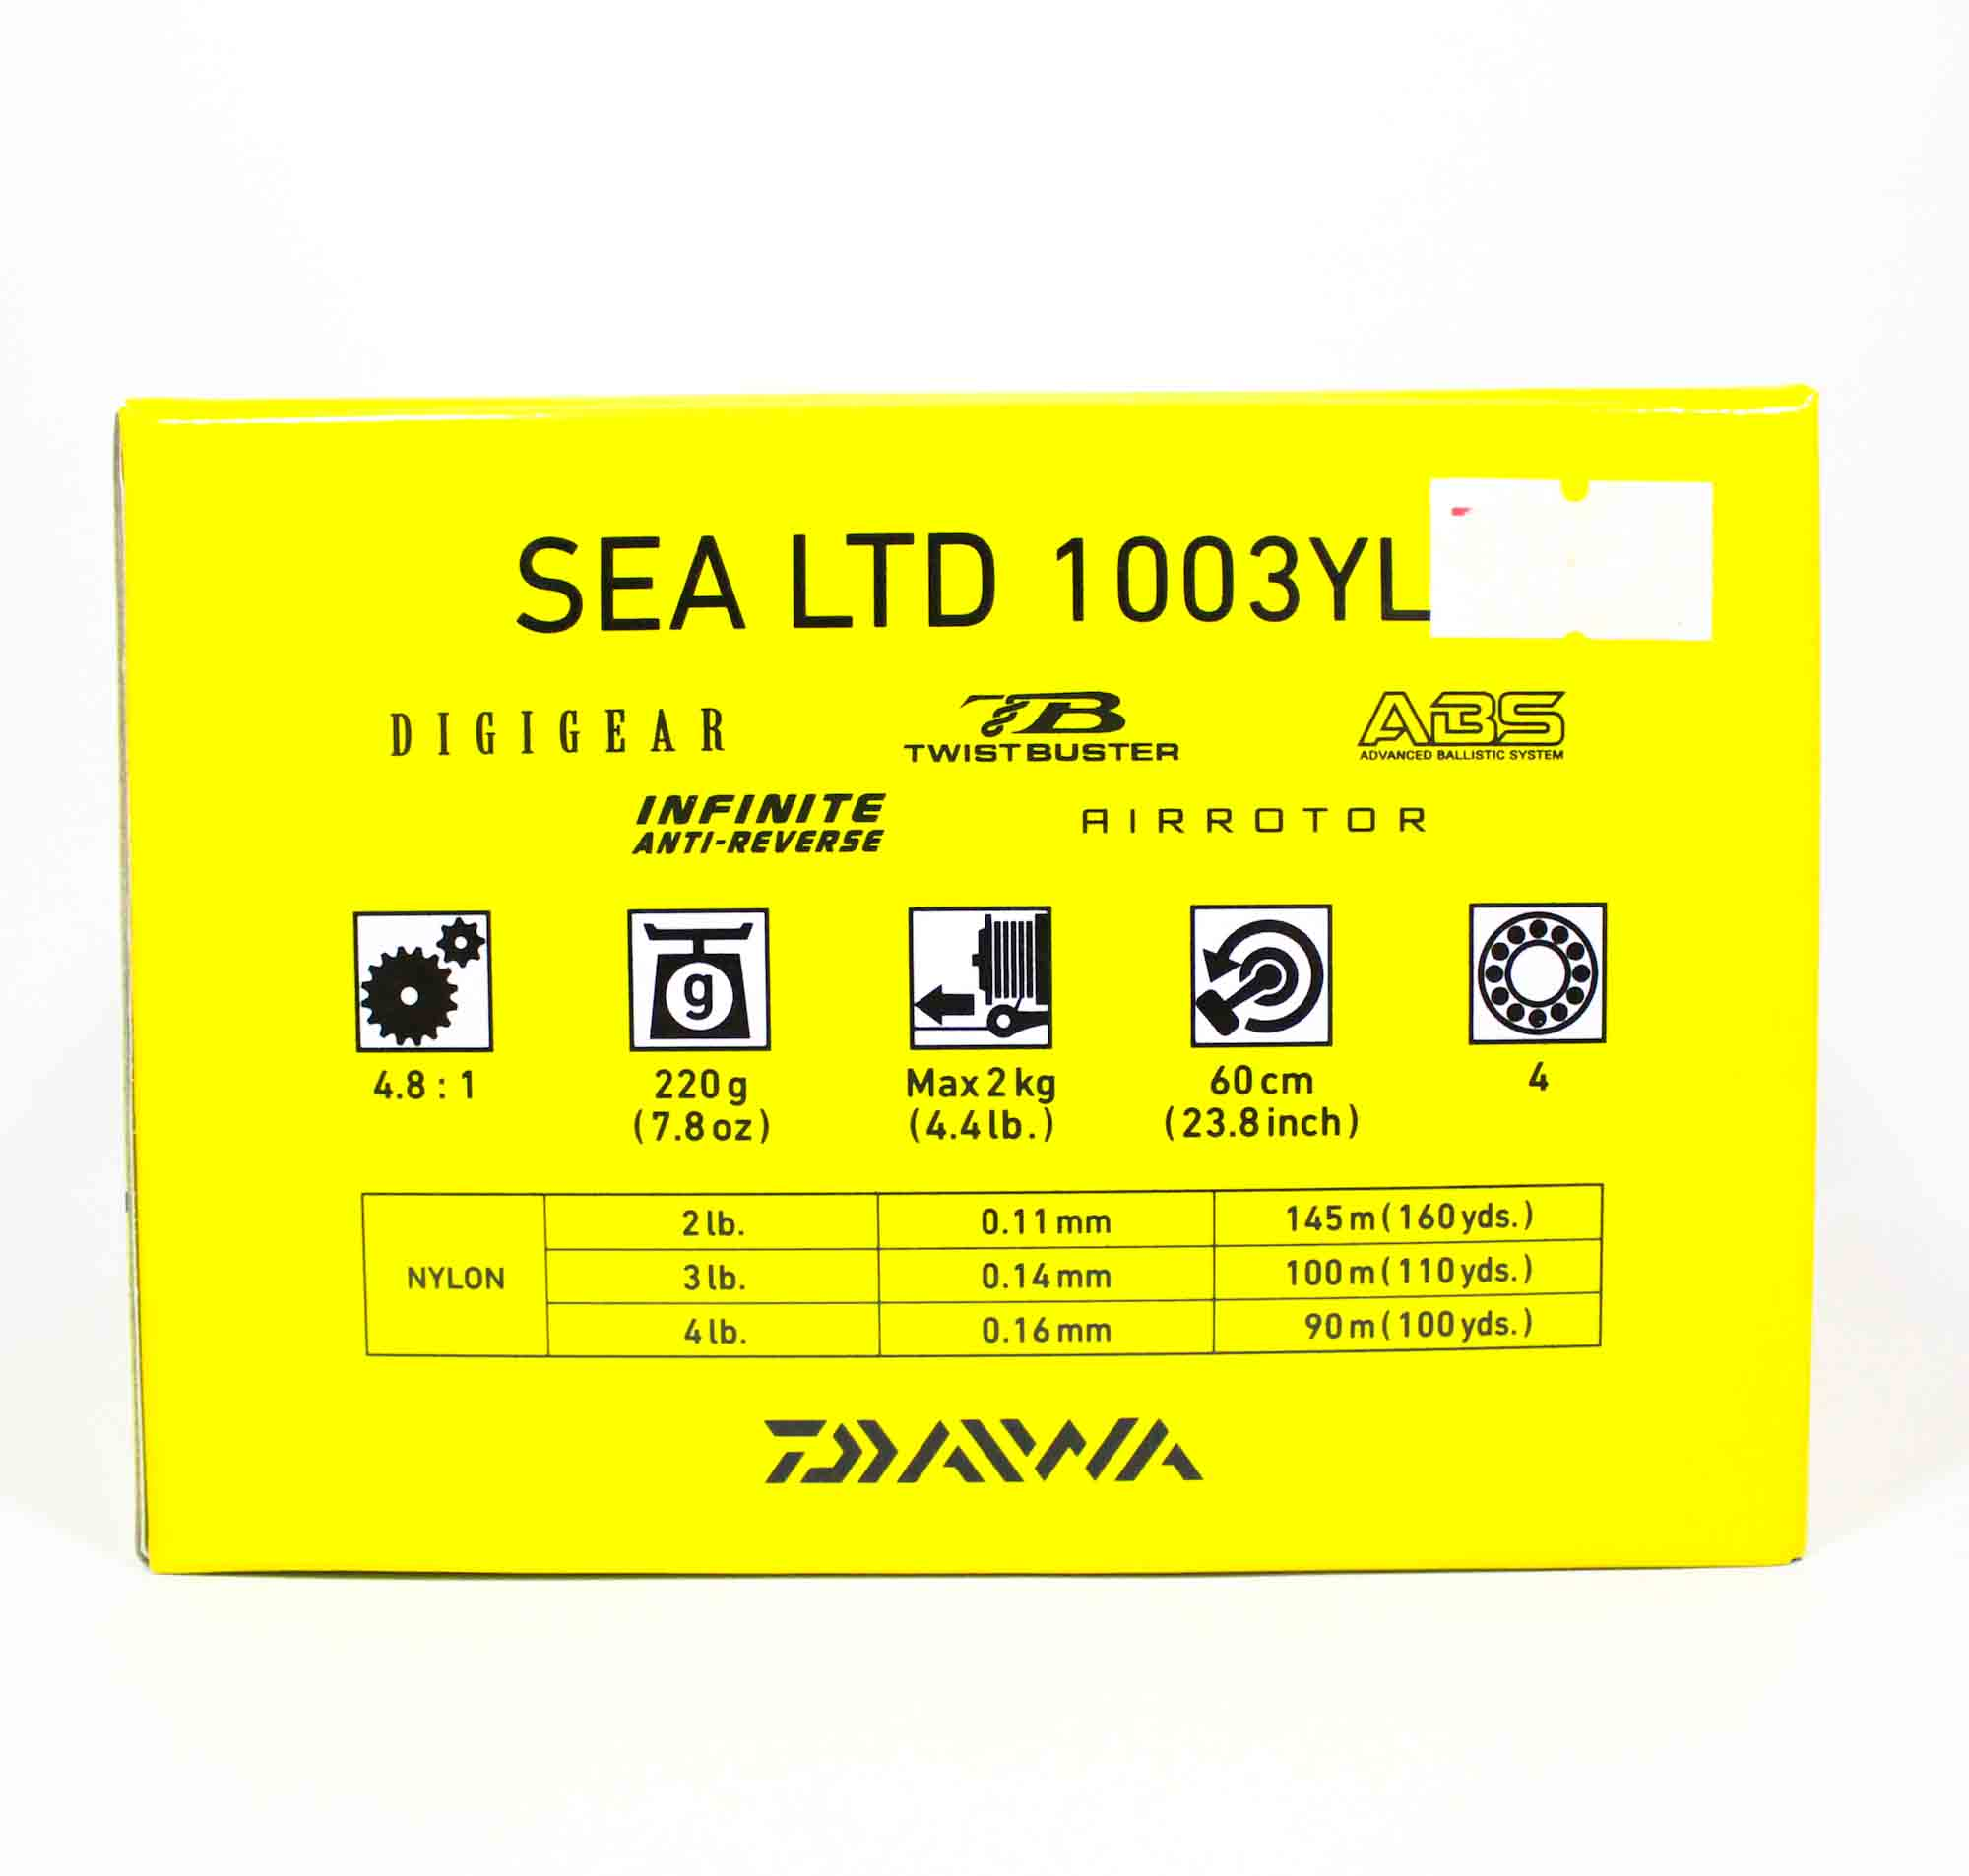 Daiwa Reel Spinning Sea Ltd 1003 YL (7960)